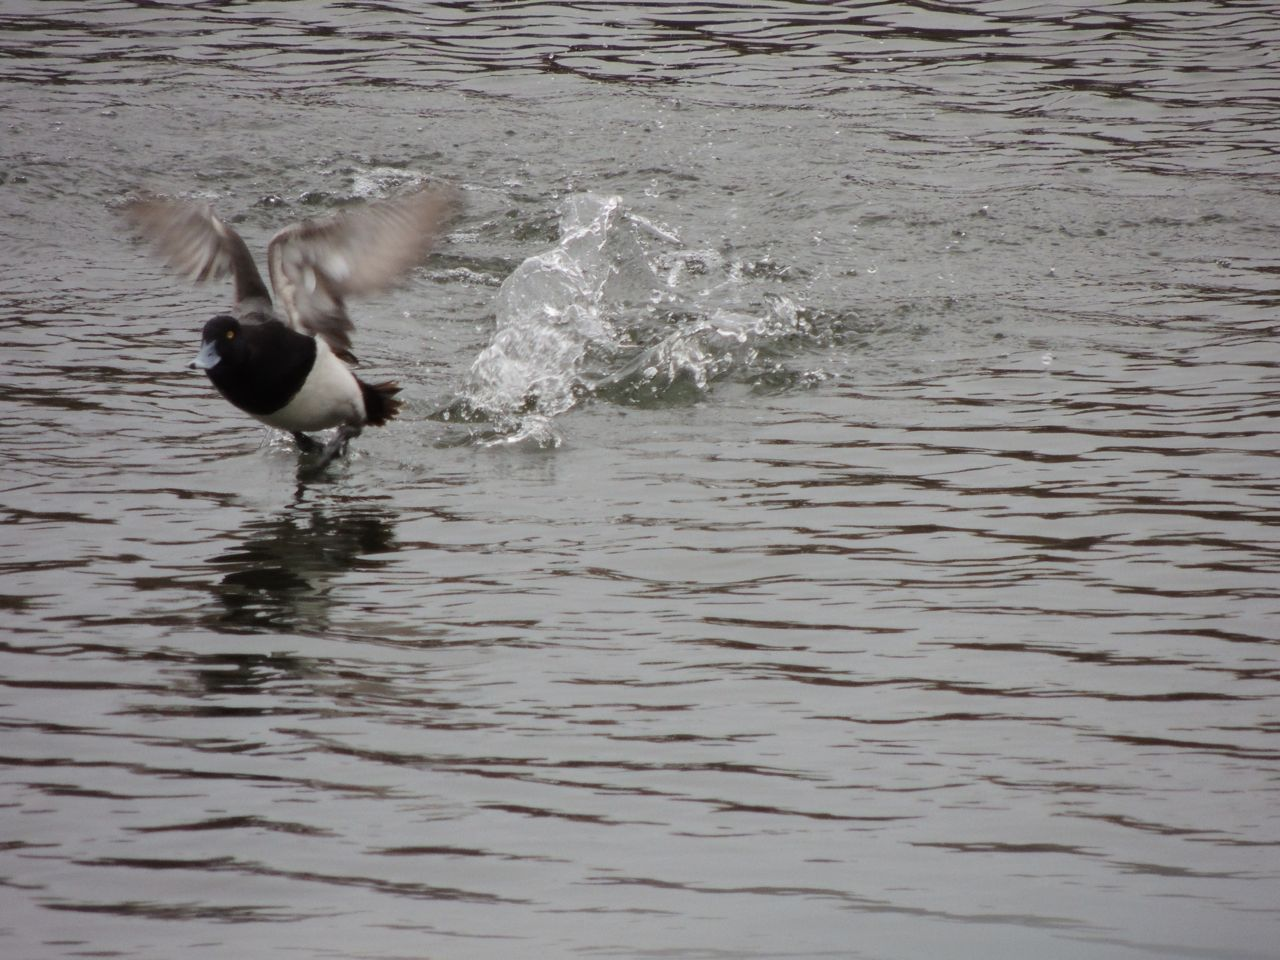 Lesser Scaup at take off